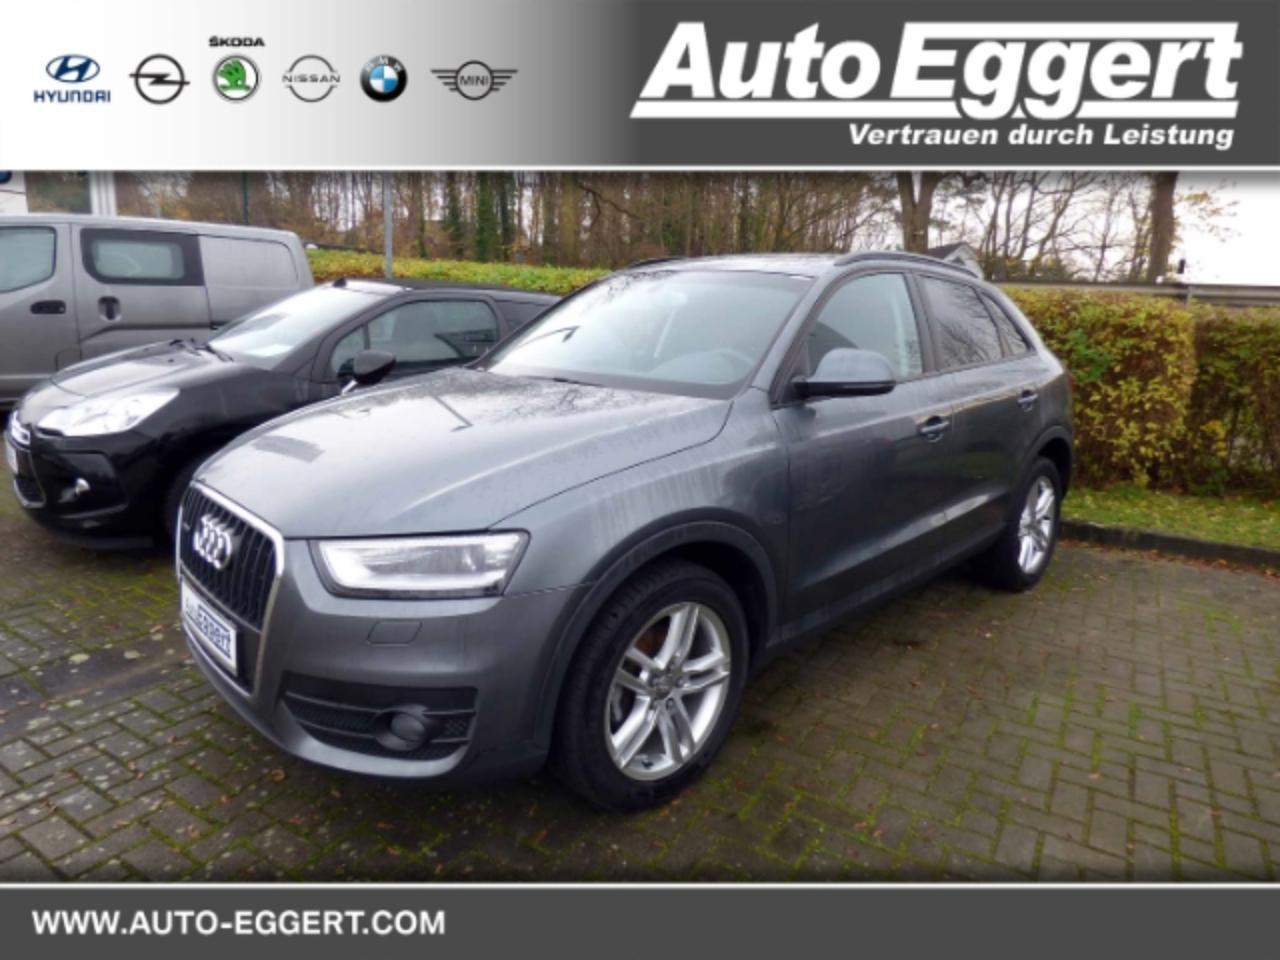 Audi Q3 2.0 TDI quattro Keyless Allrad LED-hinten LED-Tagf